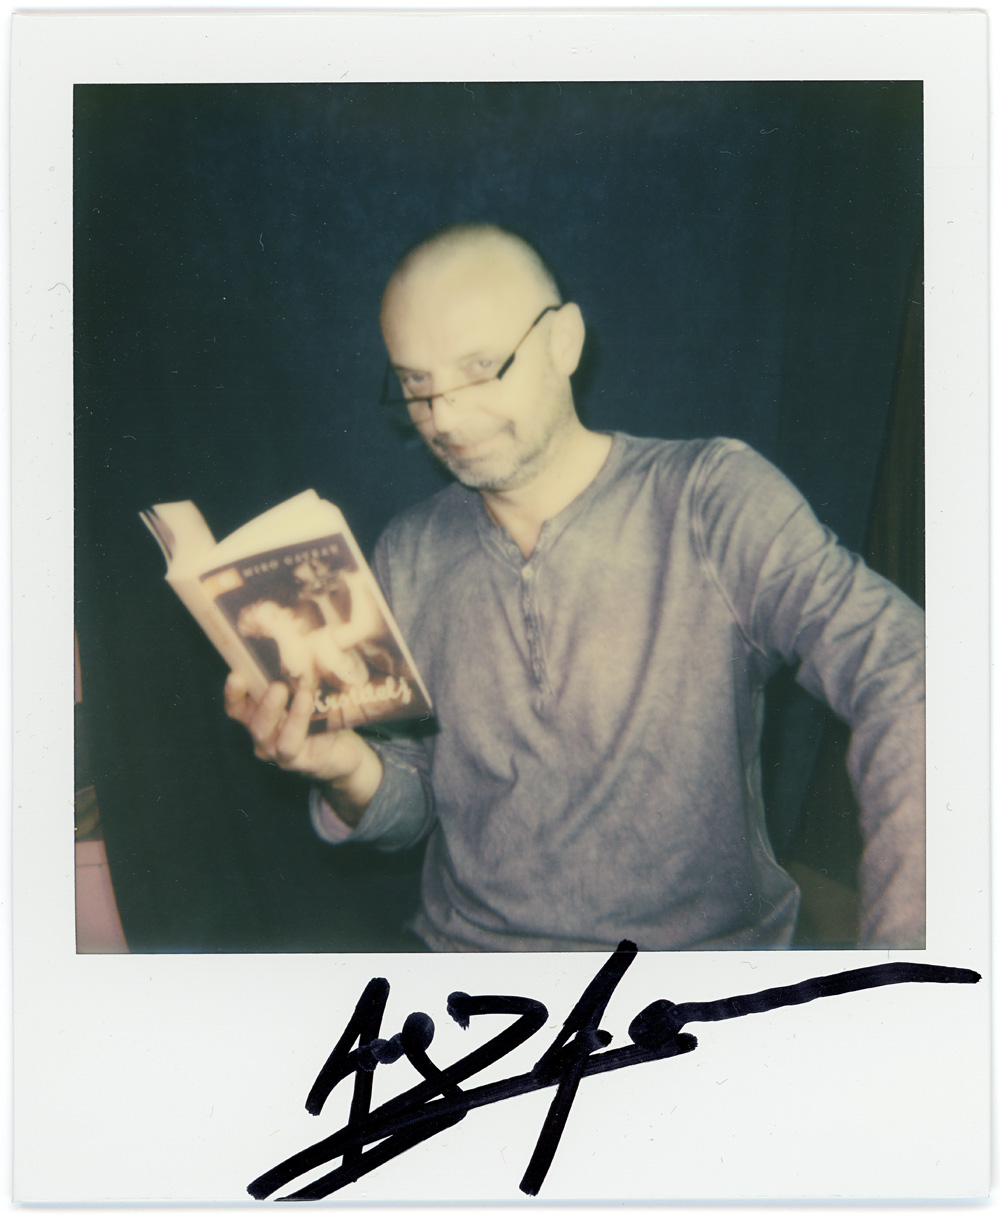 Goran-Grgic-polaroid-web